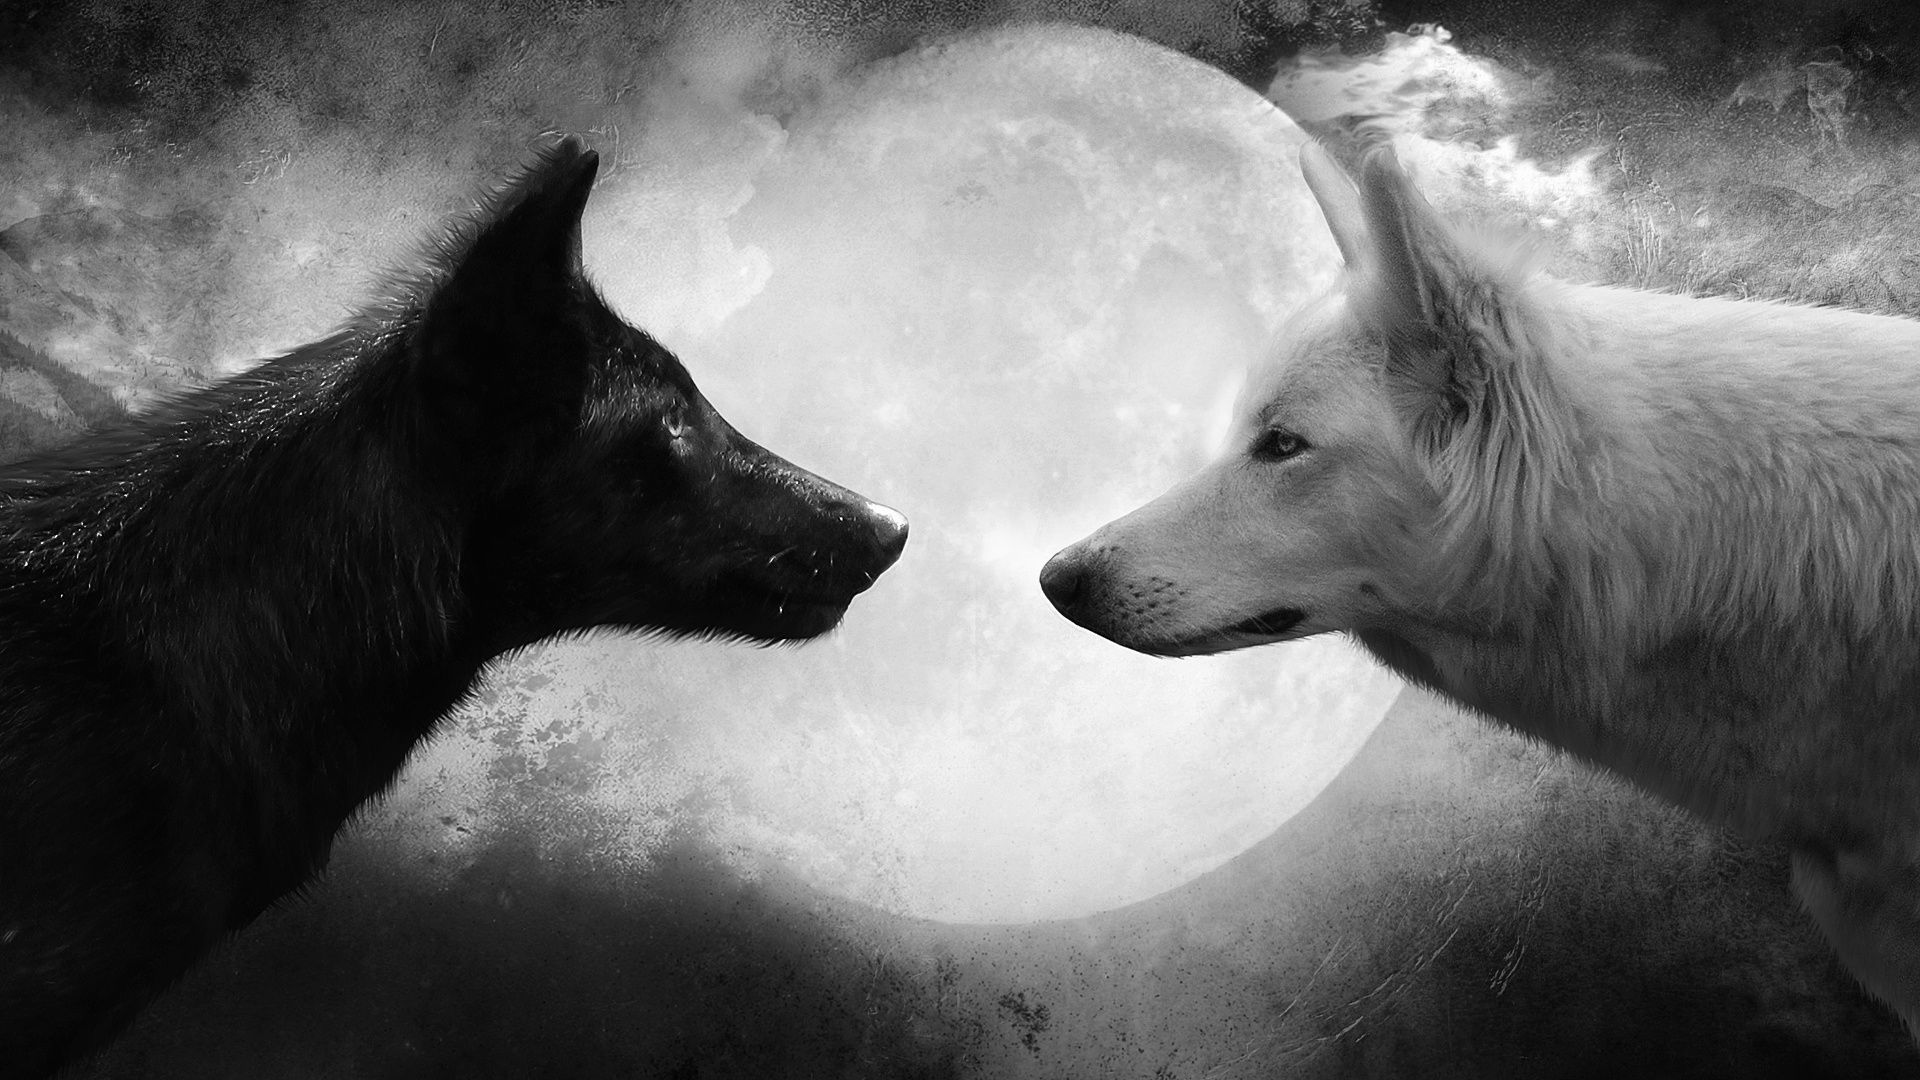 Wolf black and white animal picture image hd wallpaper